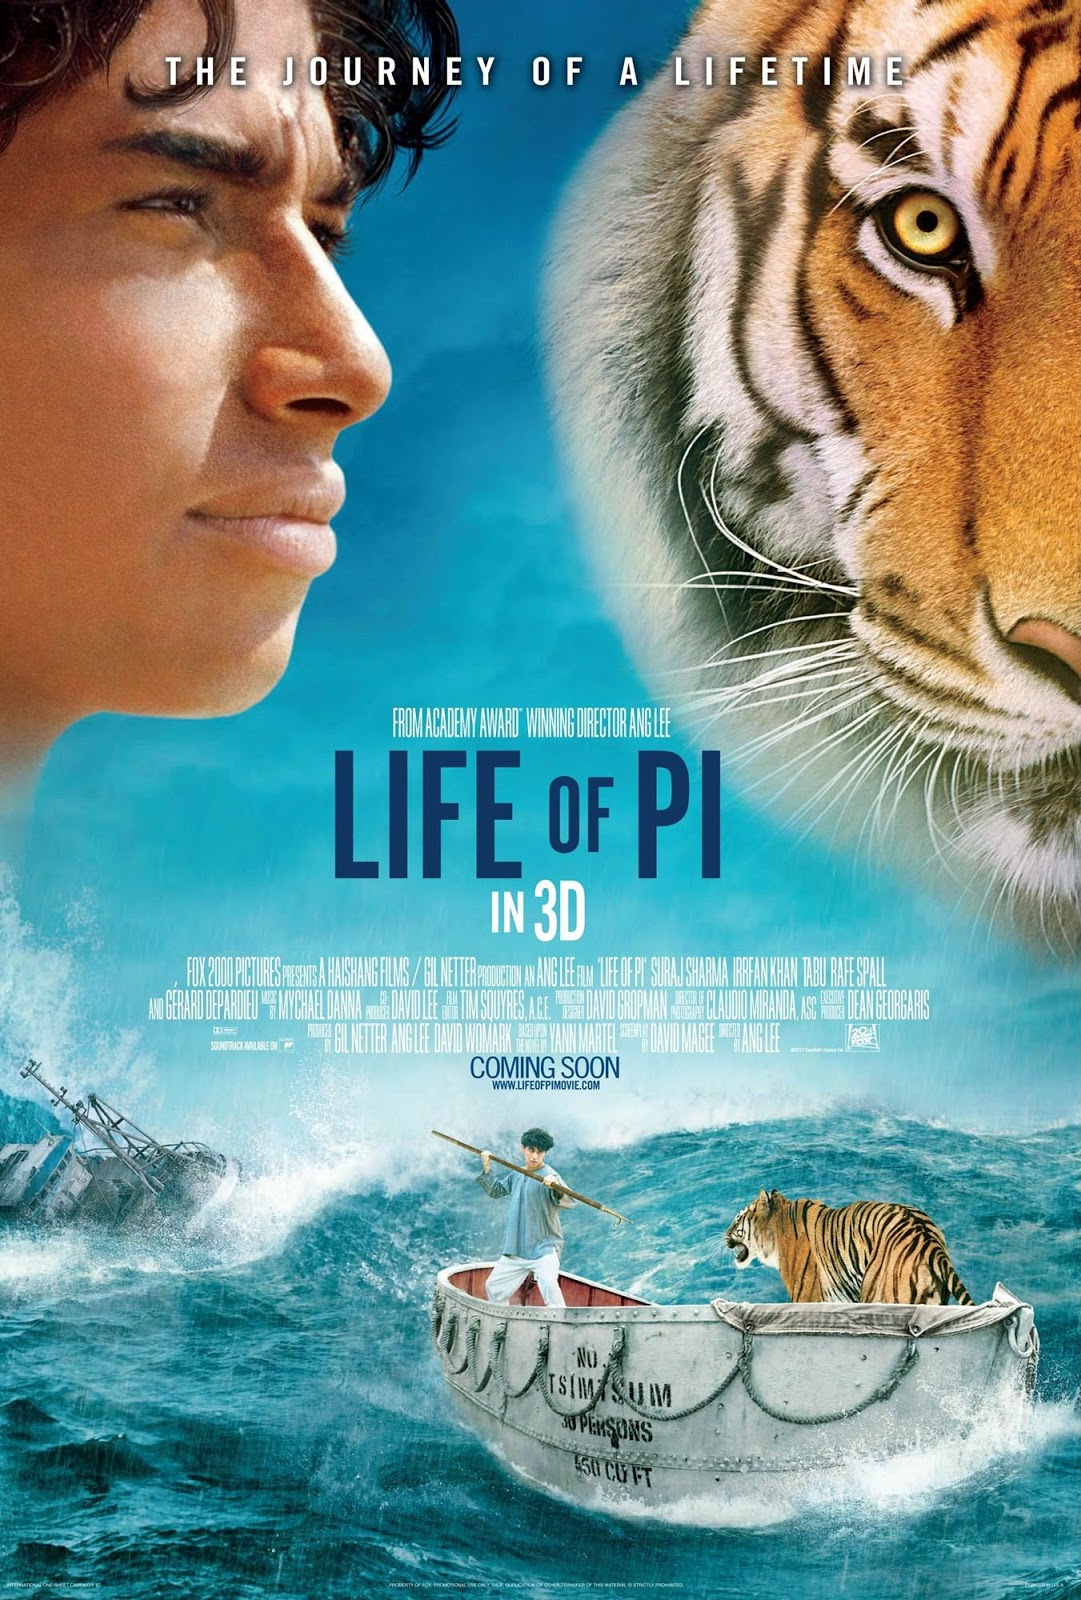 life of pie 2012 full movie hindi dubbed download links